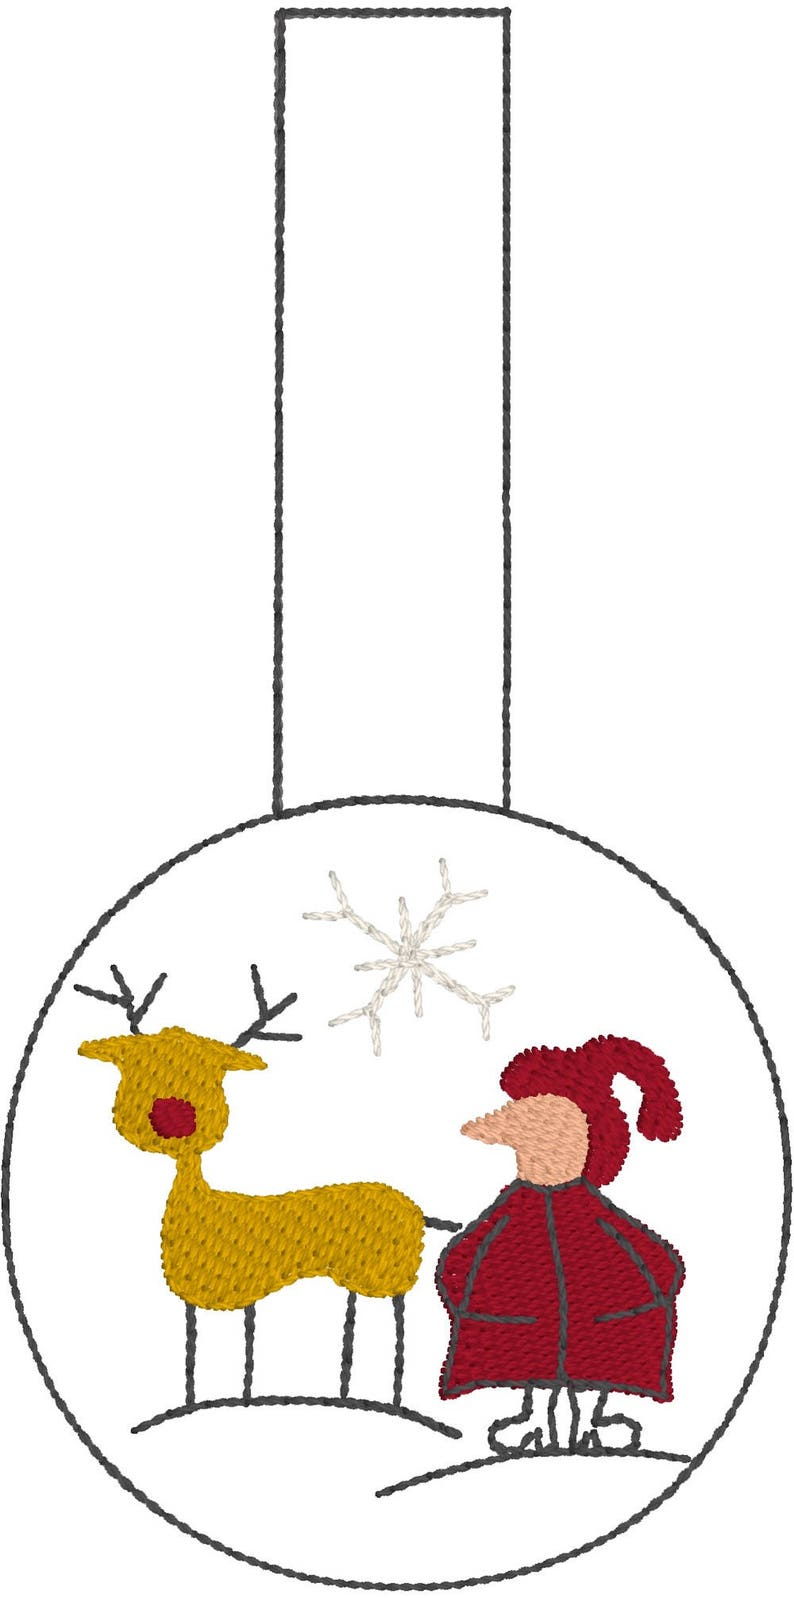 8 whimsical machine embroidery designs SANTA and RUDOLF the red nosed reindeer in a Christmas Invasion in fruBlomgren/'s Shop PIXIES